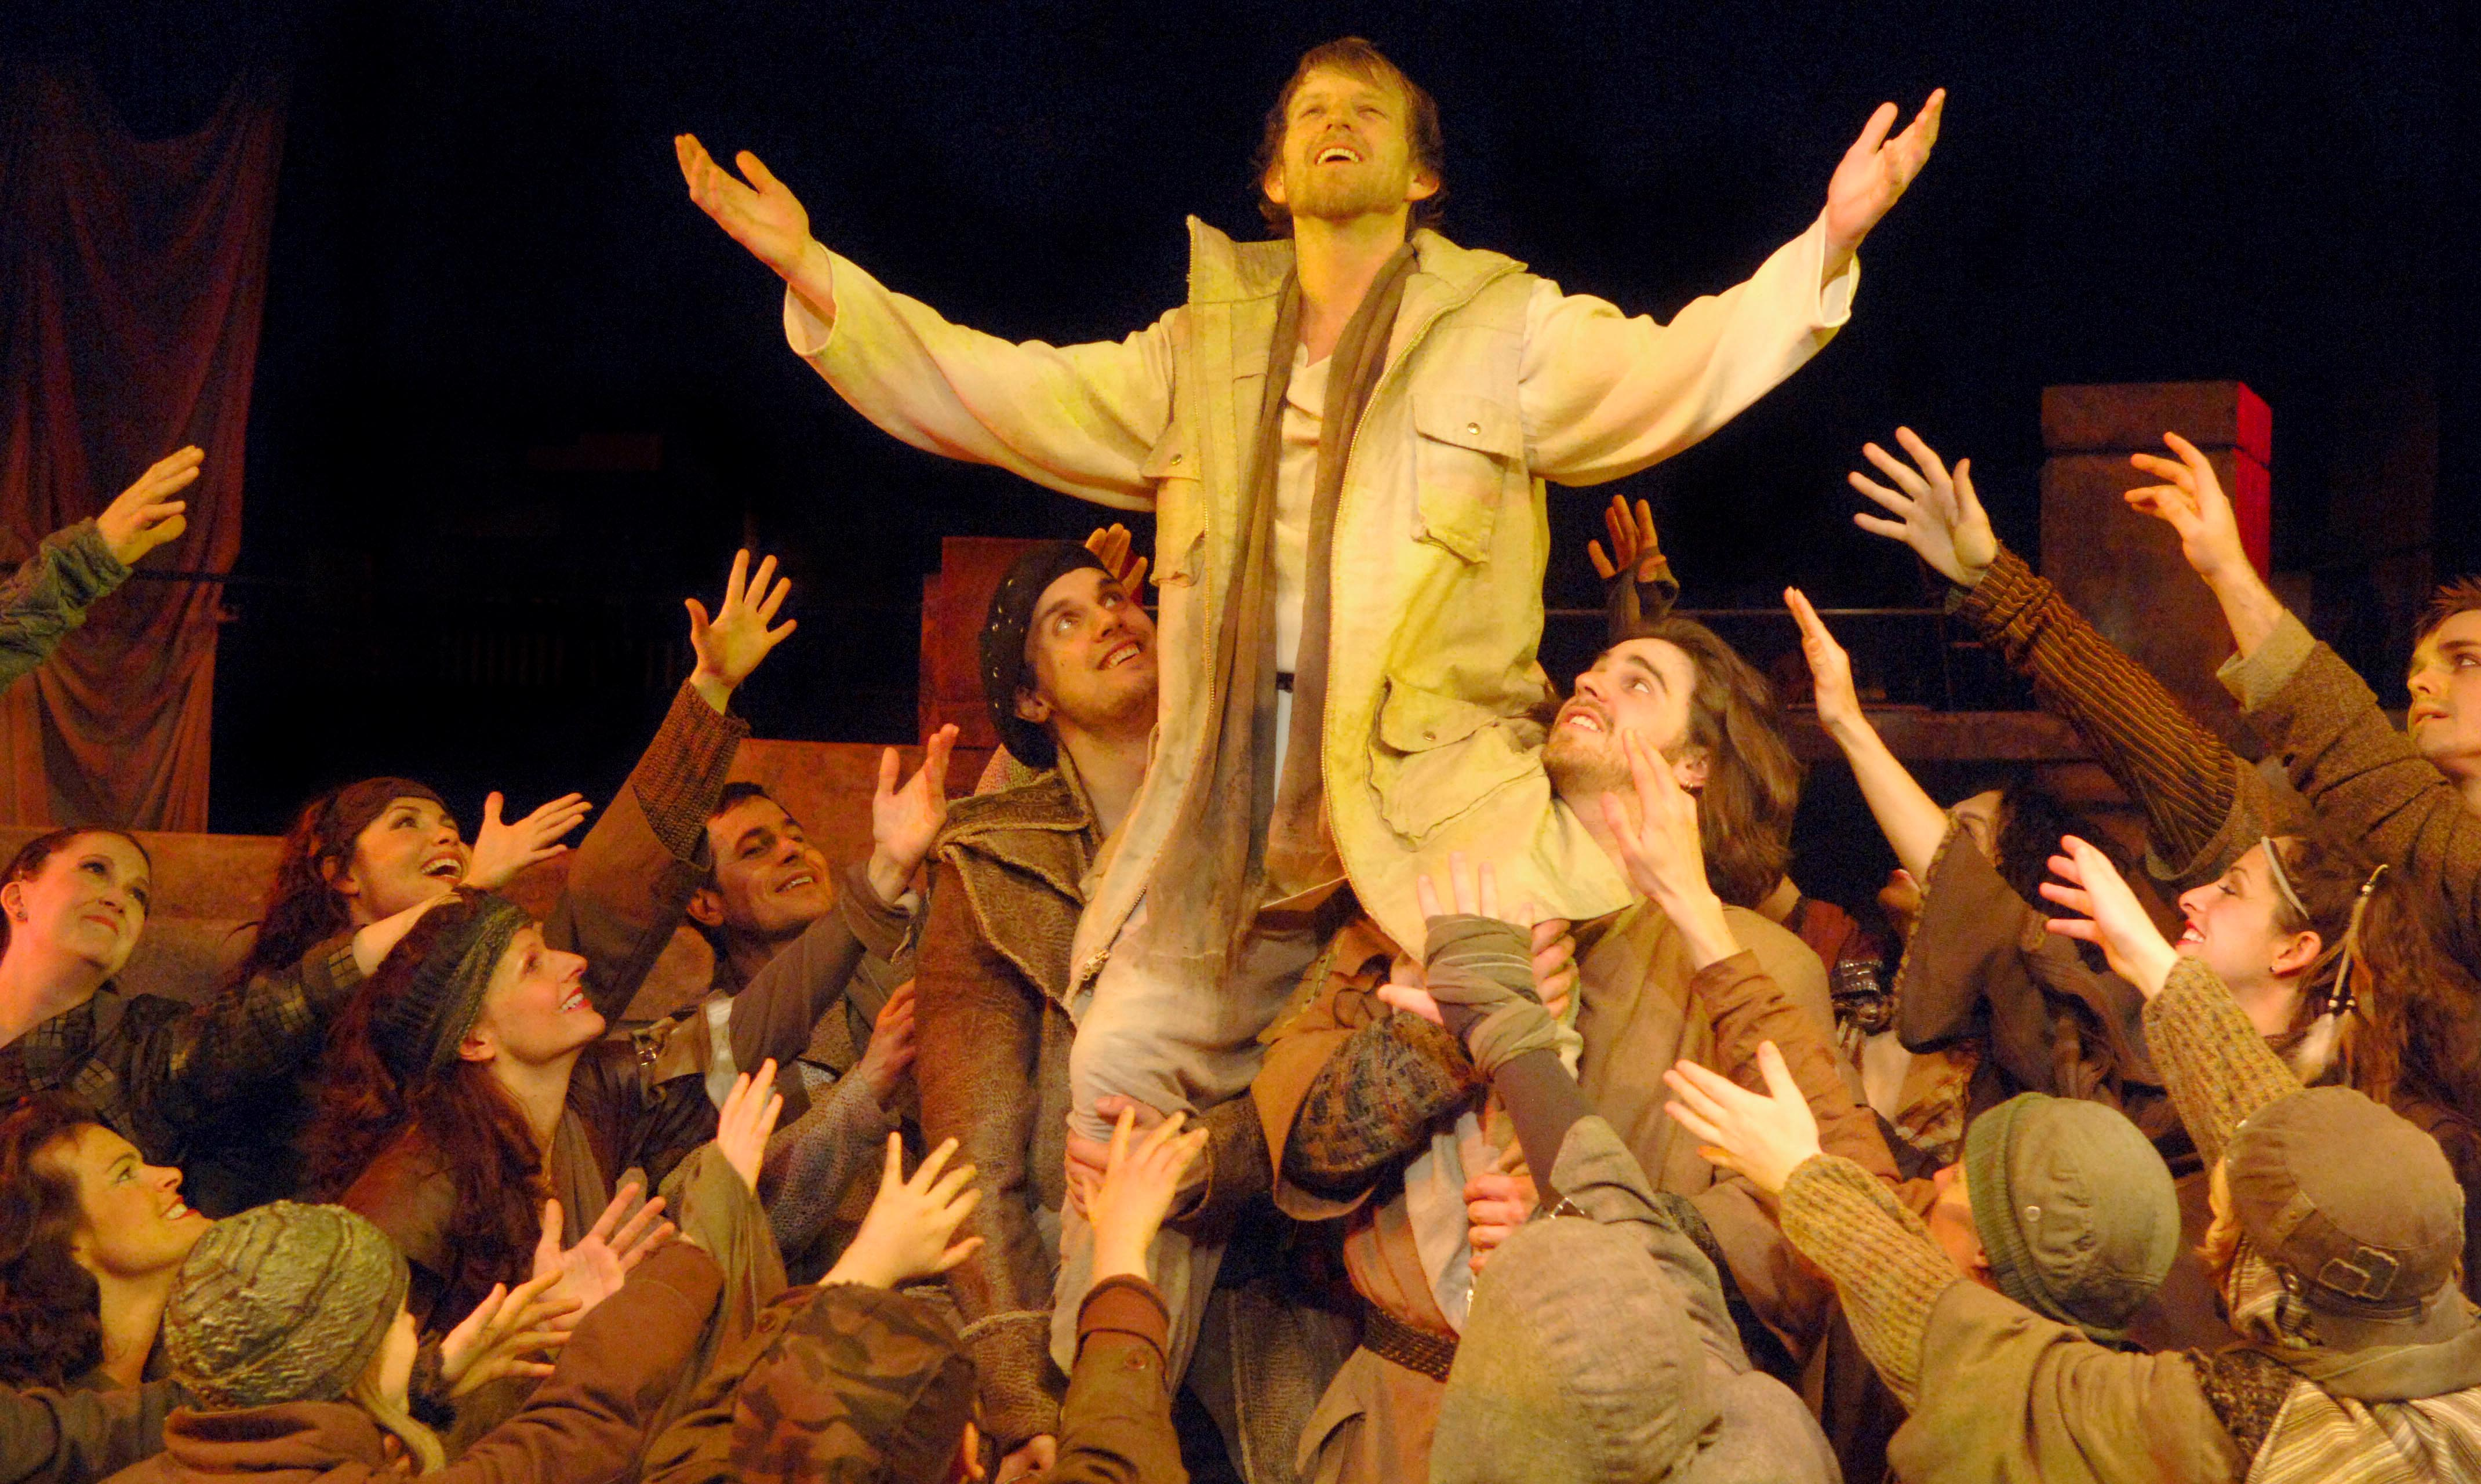 Ben Bakken in Jesus Christ Superstar. Photo by Act One, Too Ltd., courtesy Chanhassen Dinner Theatres.